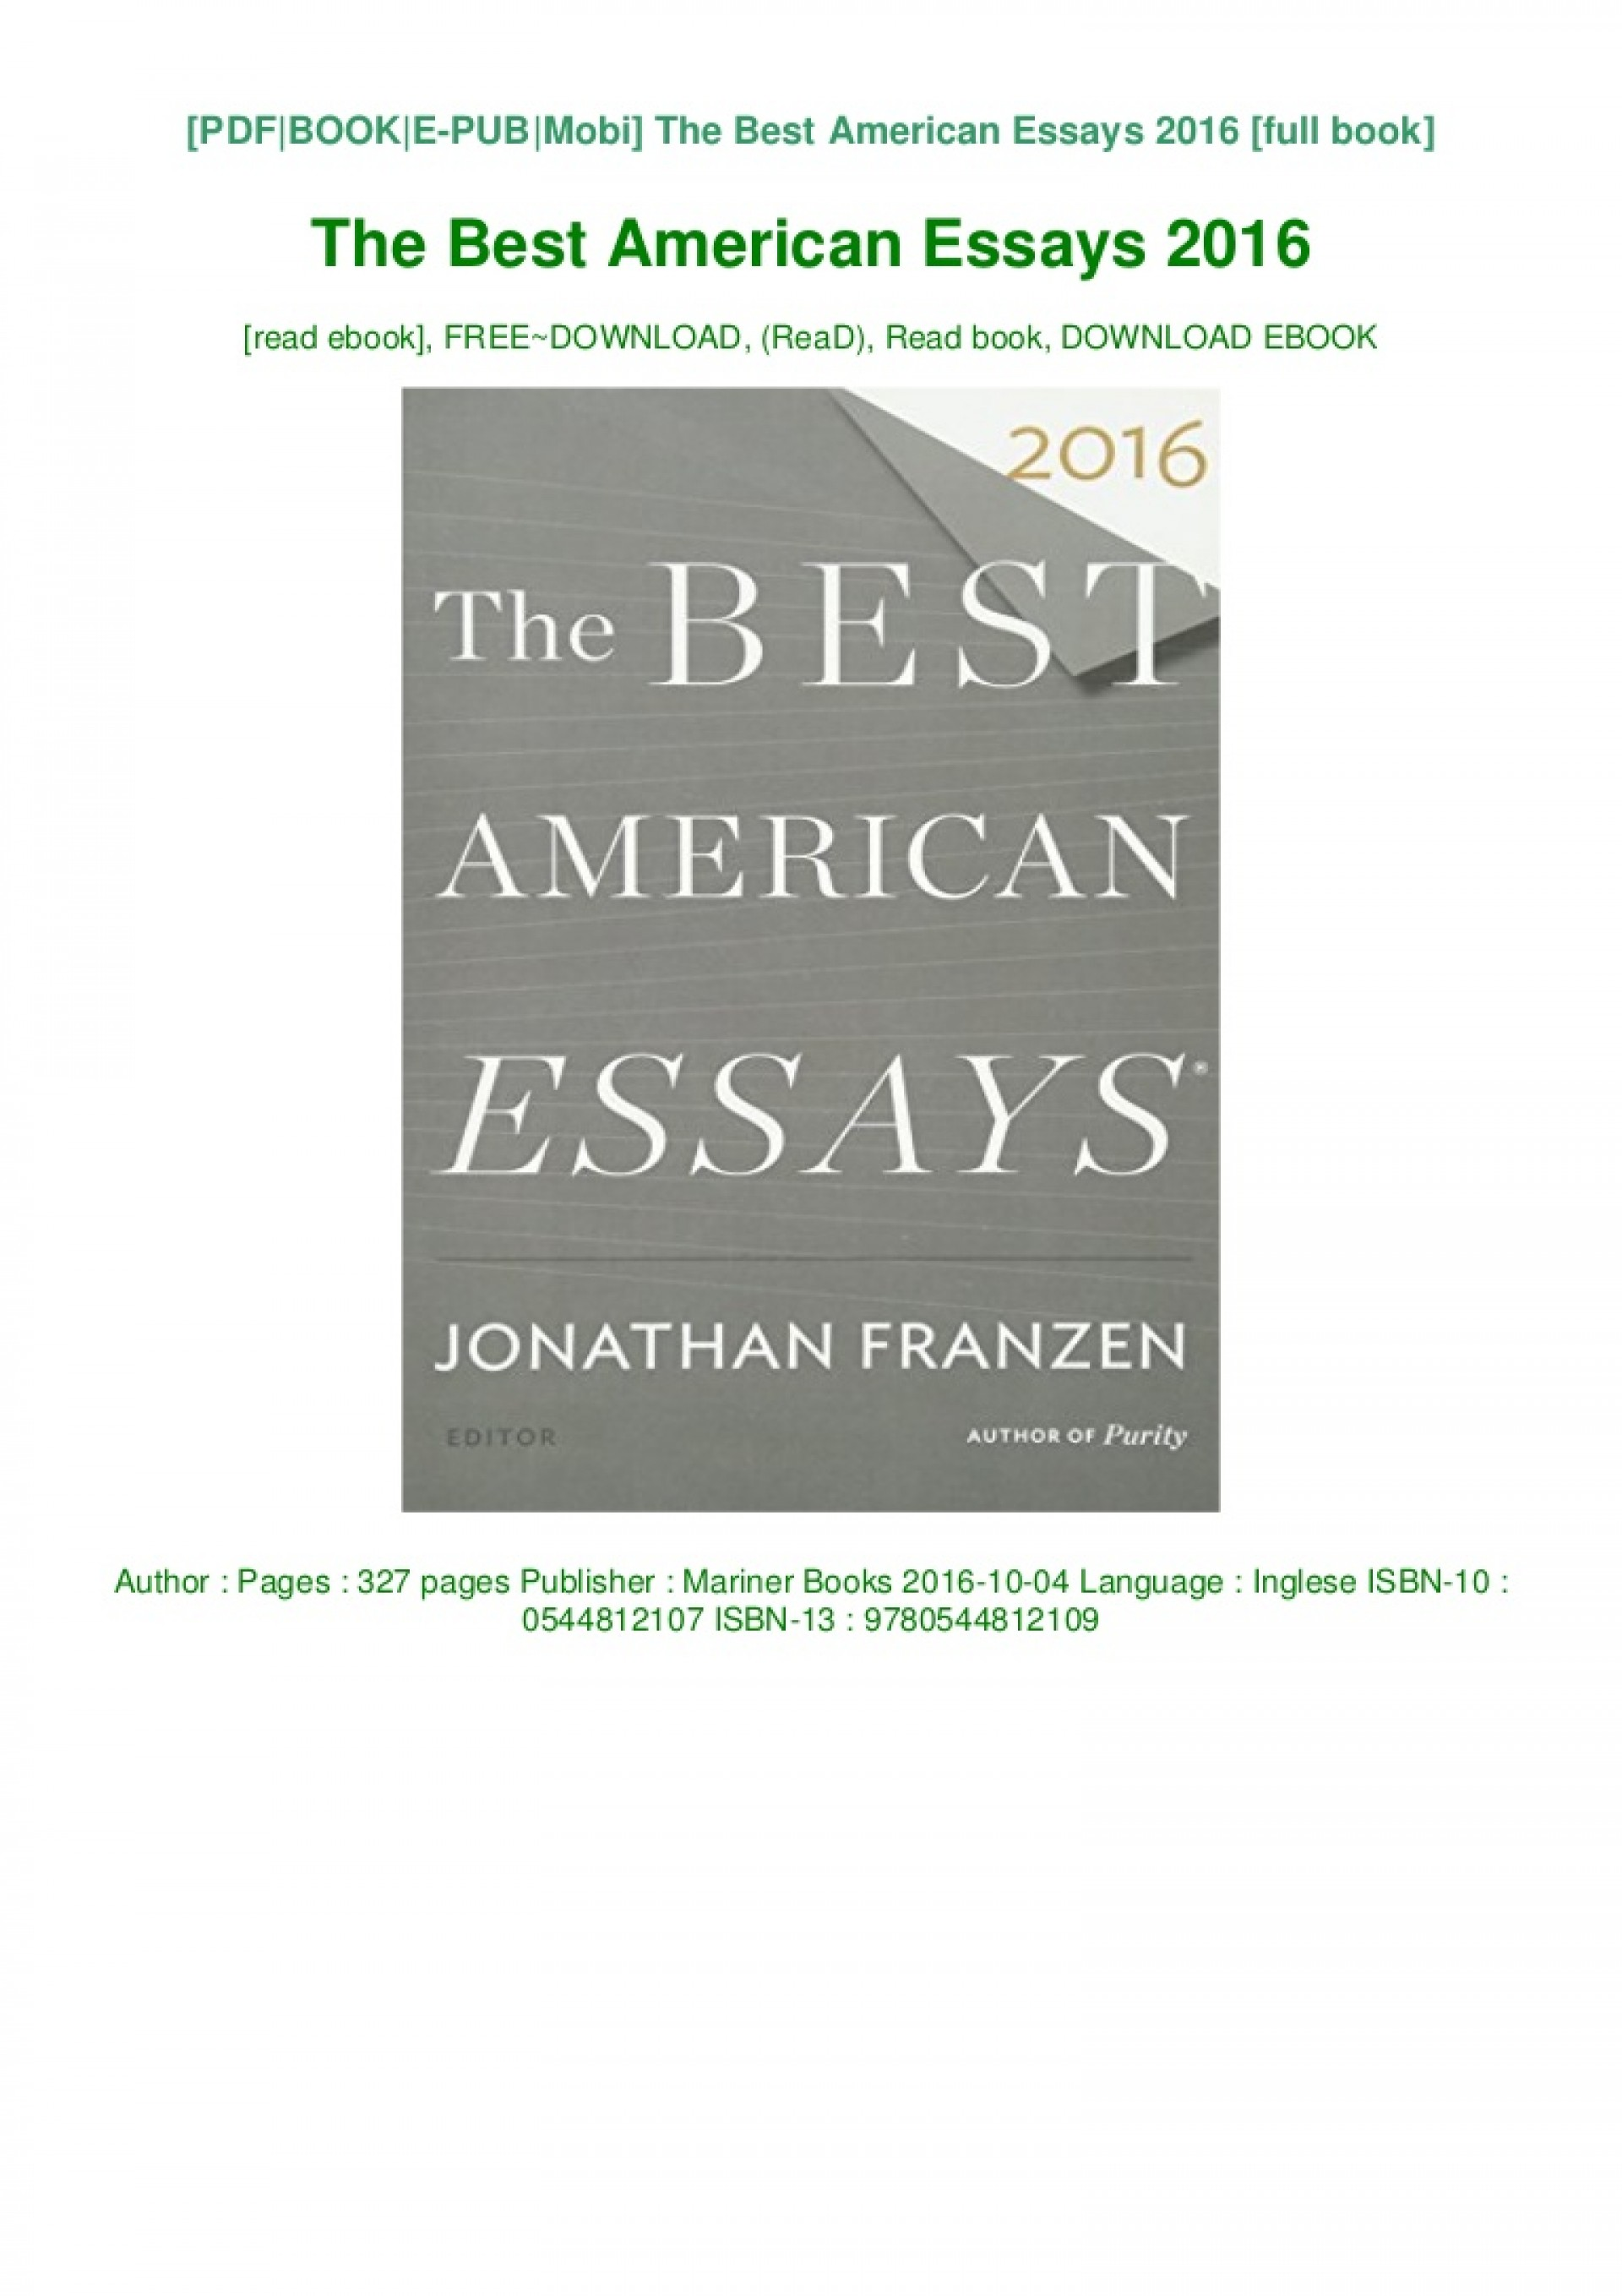 013 Download The Best American Essays Pdf Epub Audiobook Ebook Thumbnail Essay Striking 2017 Submissions 2019 Of Century Table Contents 1920